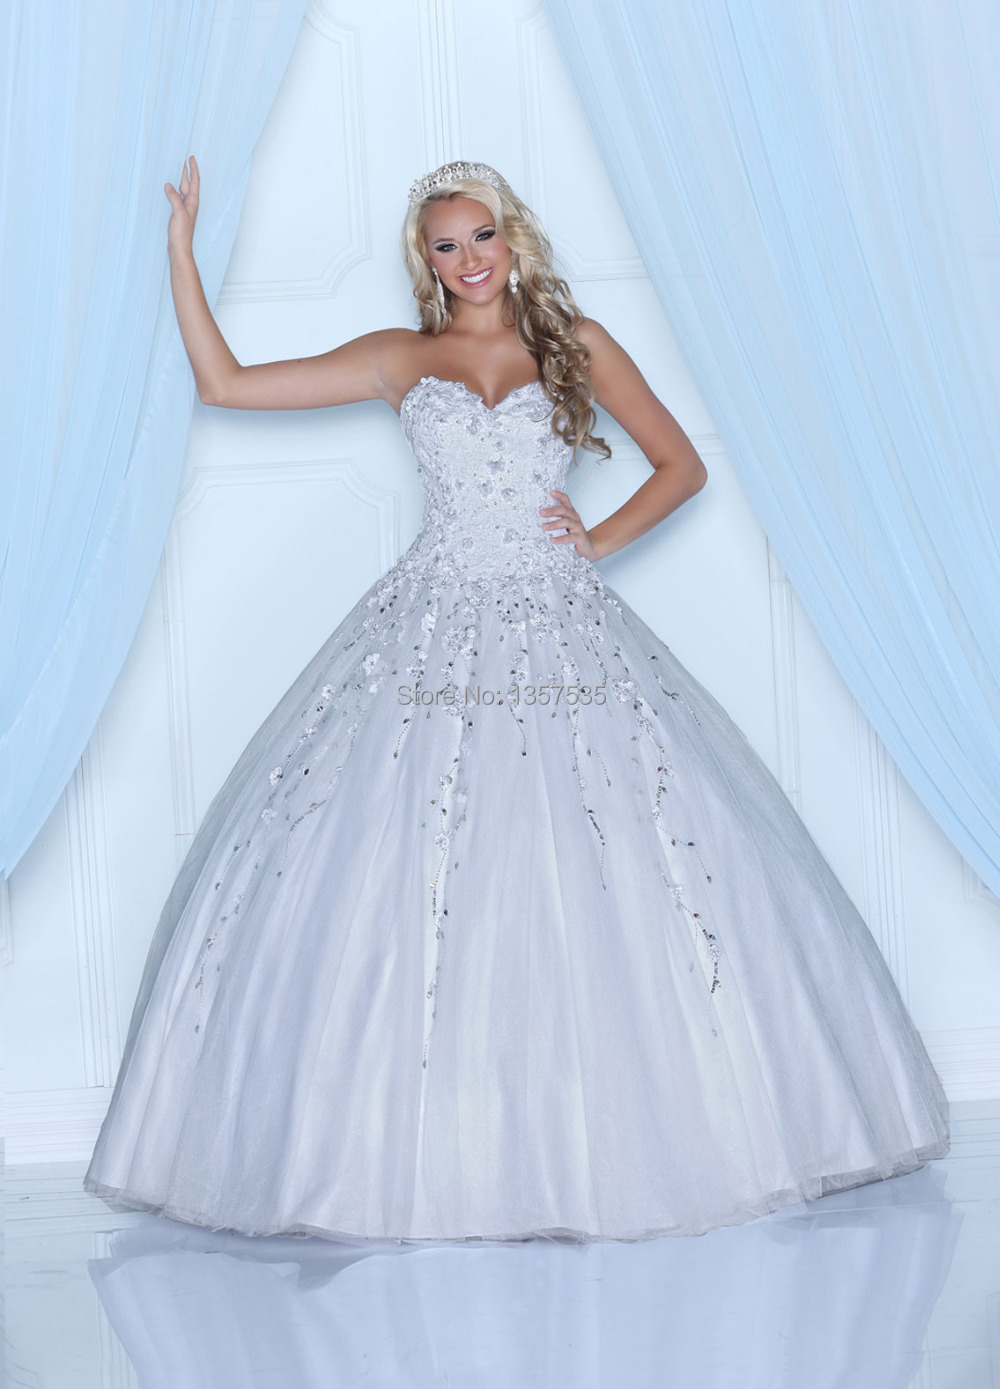 New Fashion 2014 White Quinceanera Dresses Ball Gown